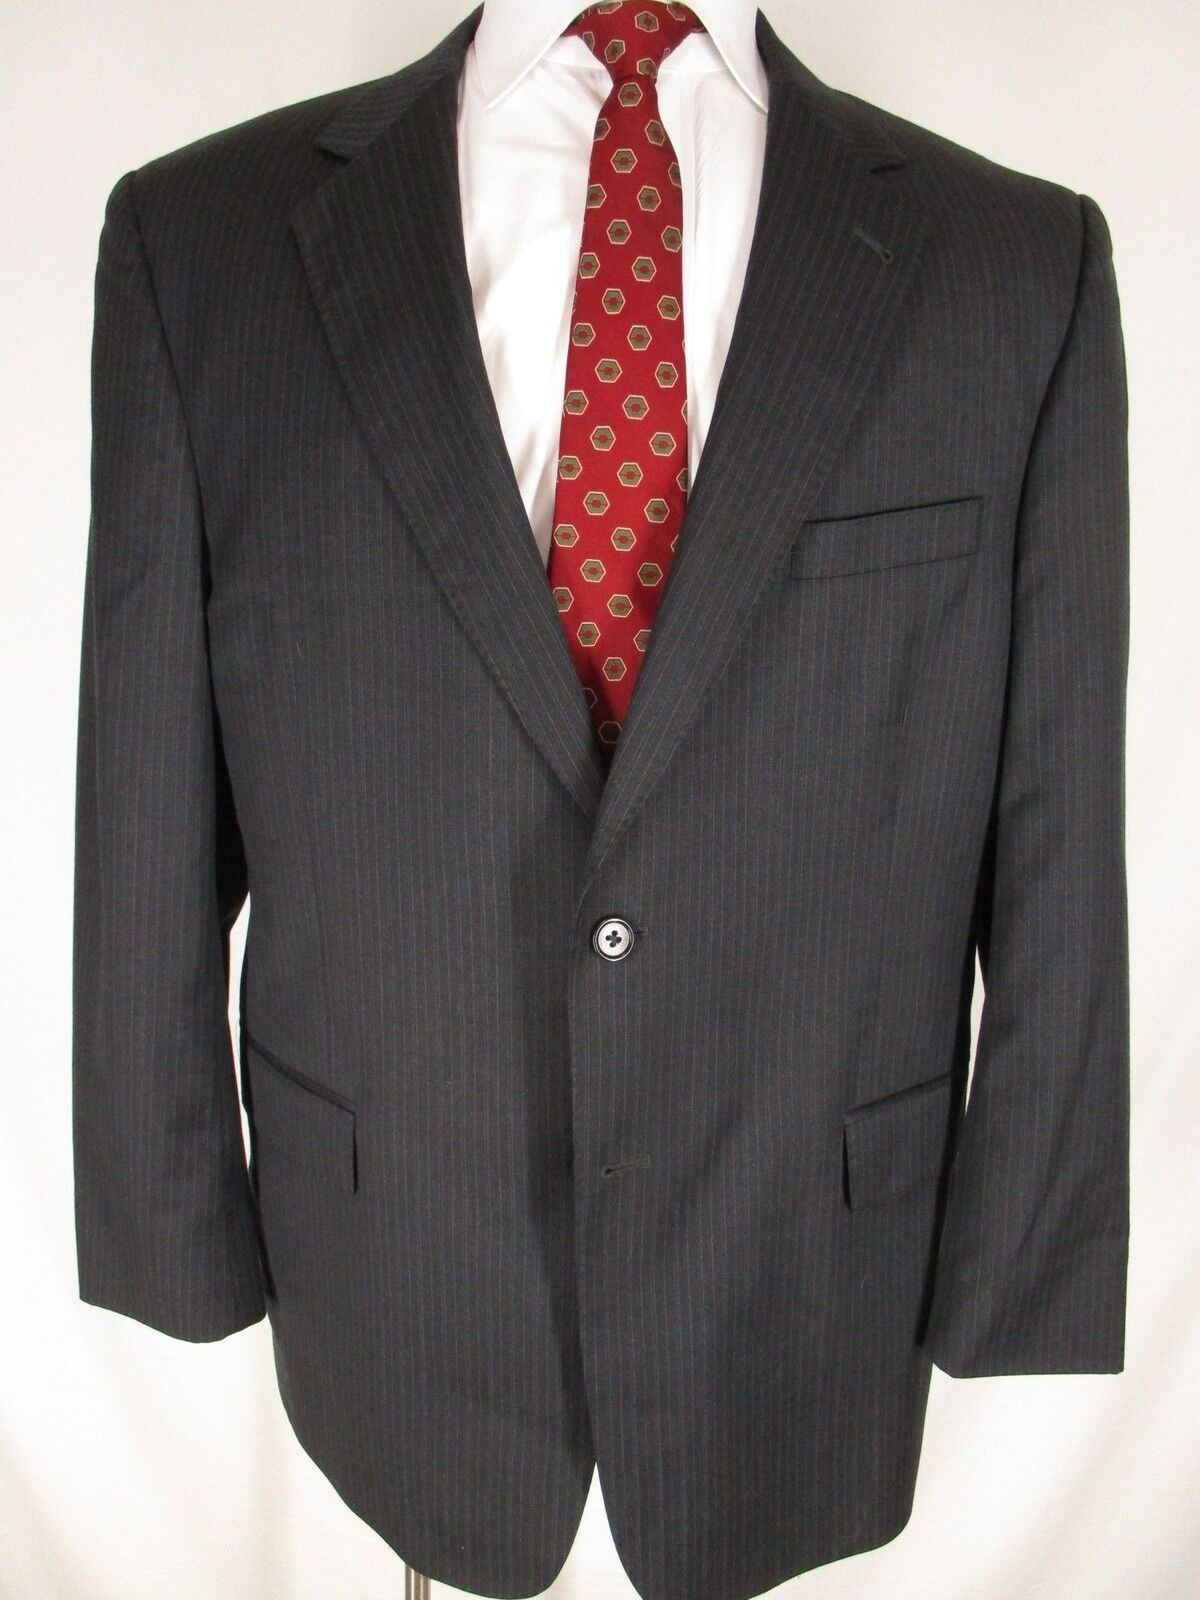 Jos A Bank Signature Gold  Herren Charcoal Stripe 2 Btn Suit 44R